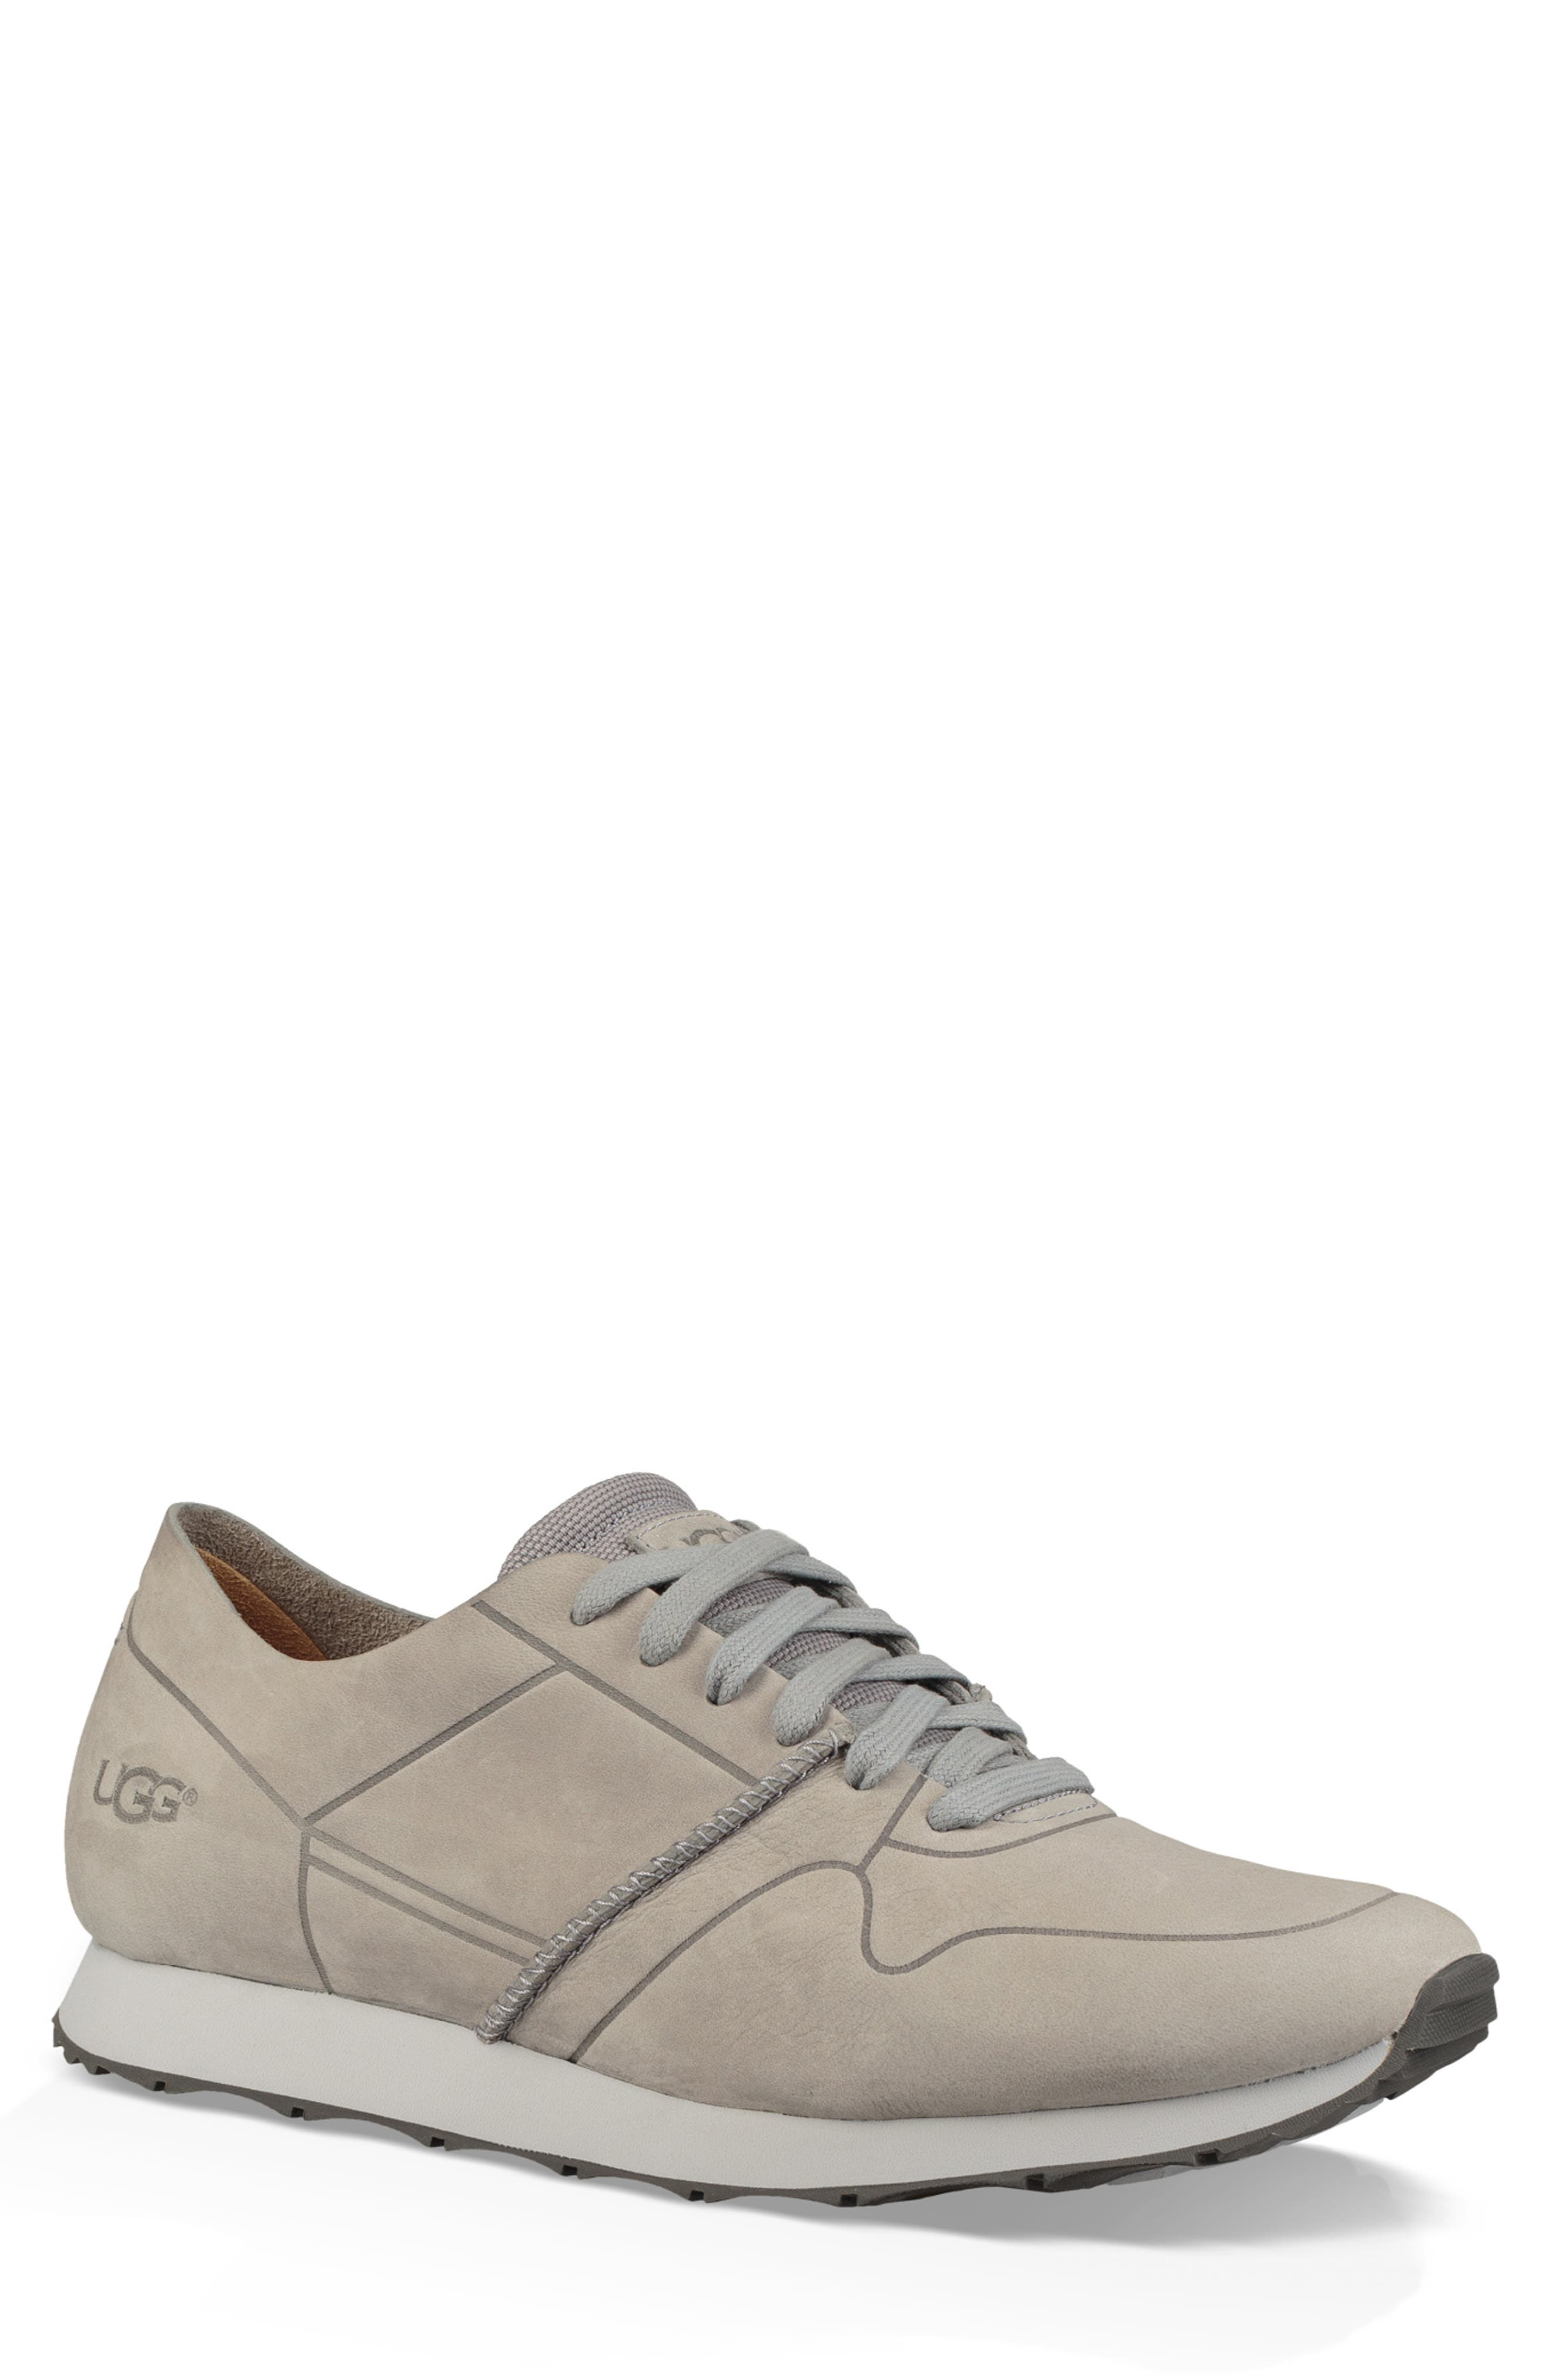 Trigo Unlined Sneaker,                             Main thumbnail 1, color,                             024